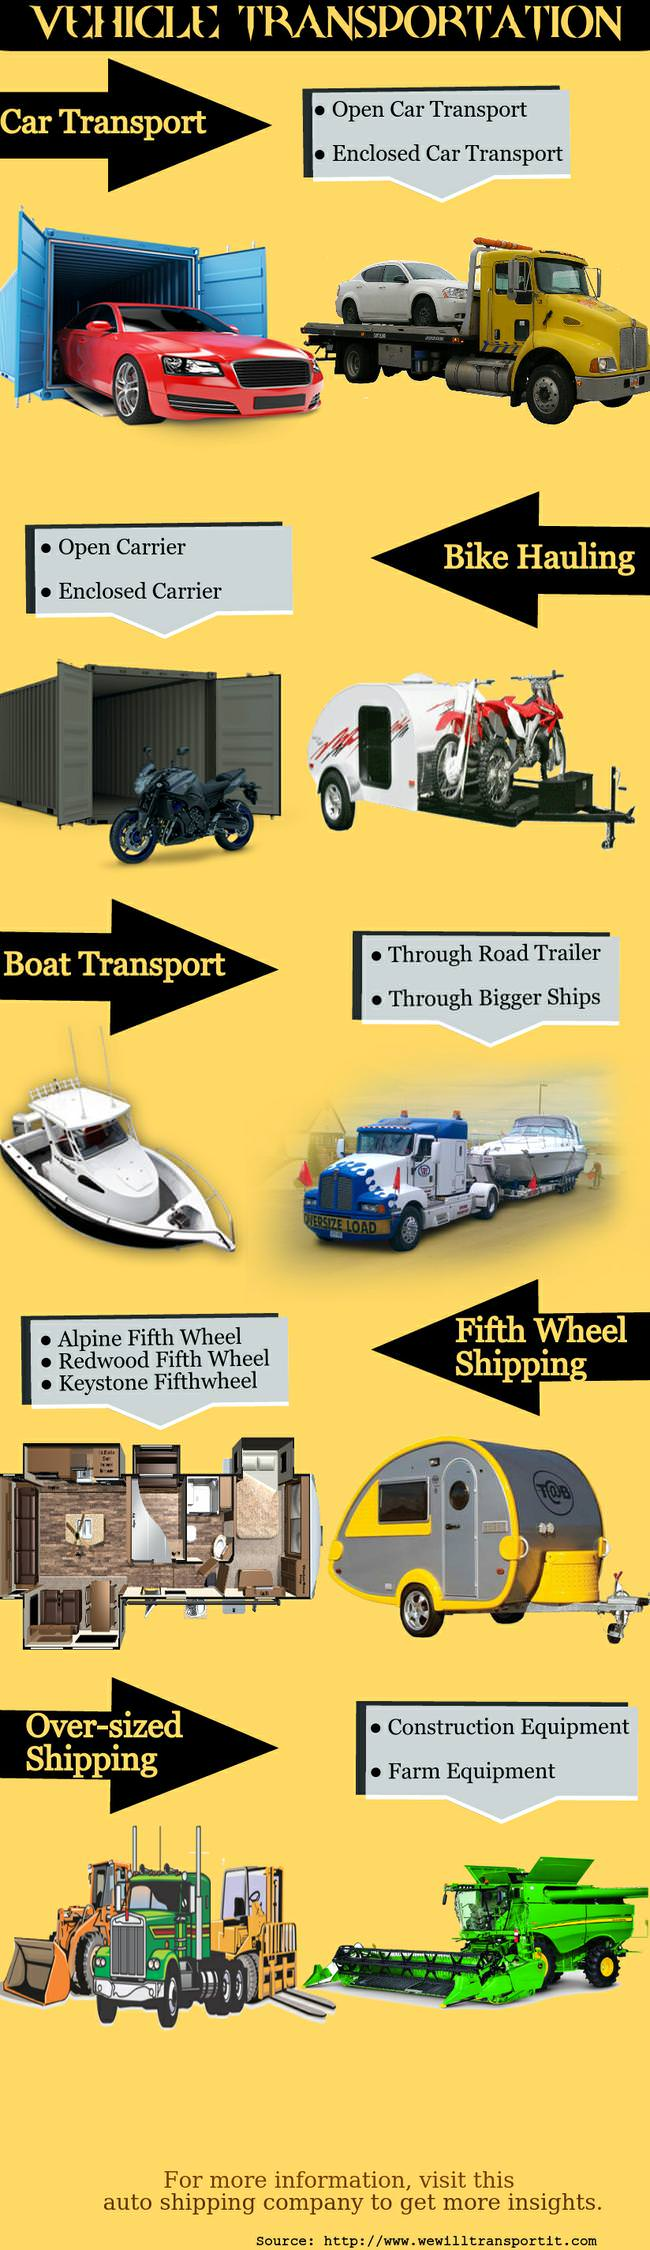 vehicletransportation (copy)-jpeg